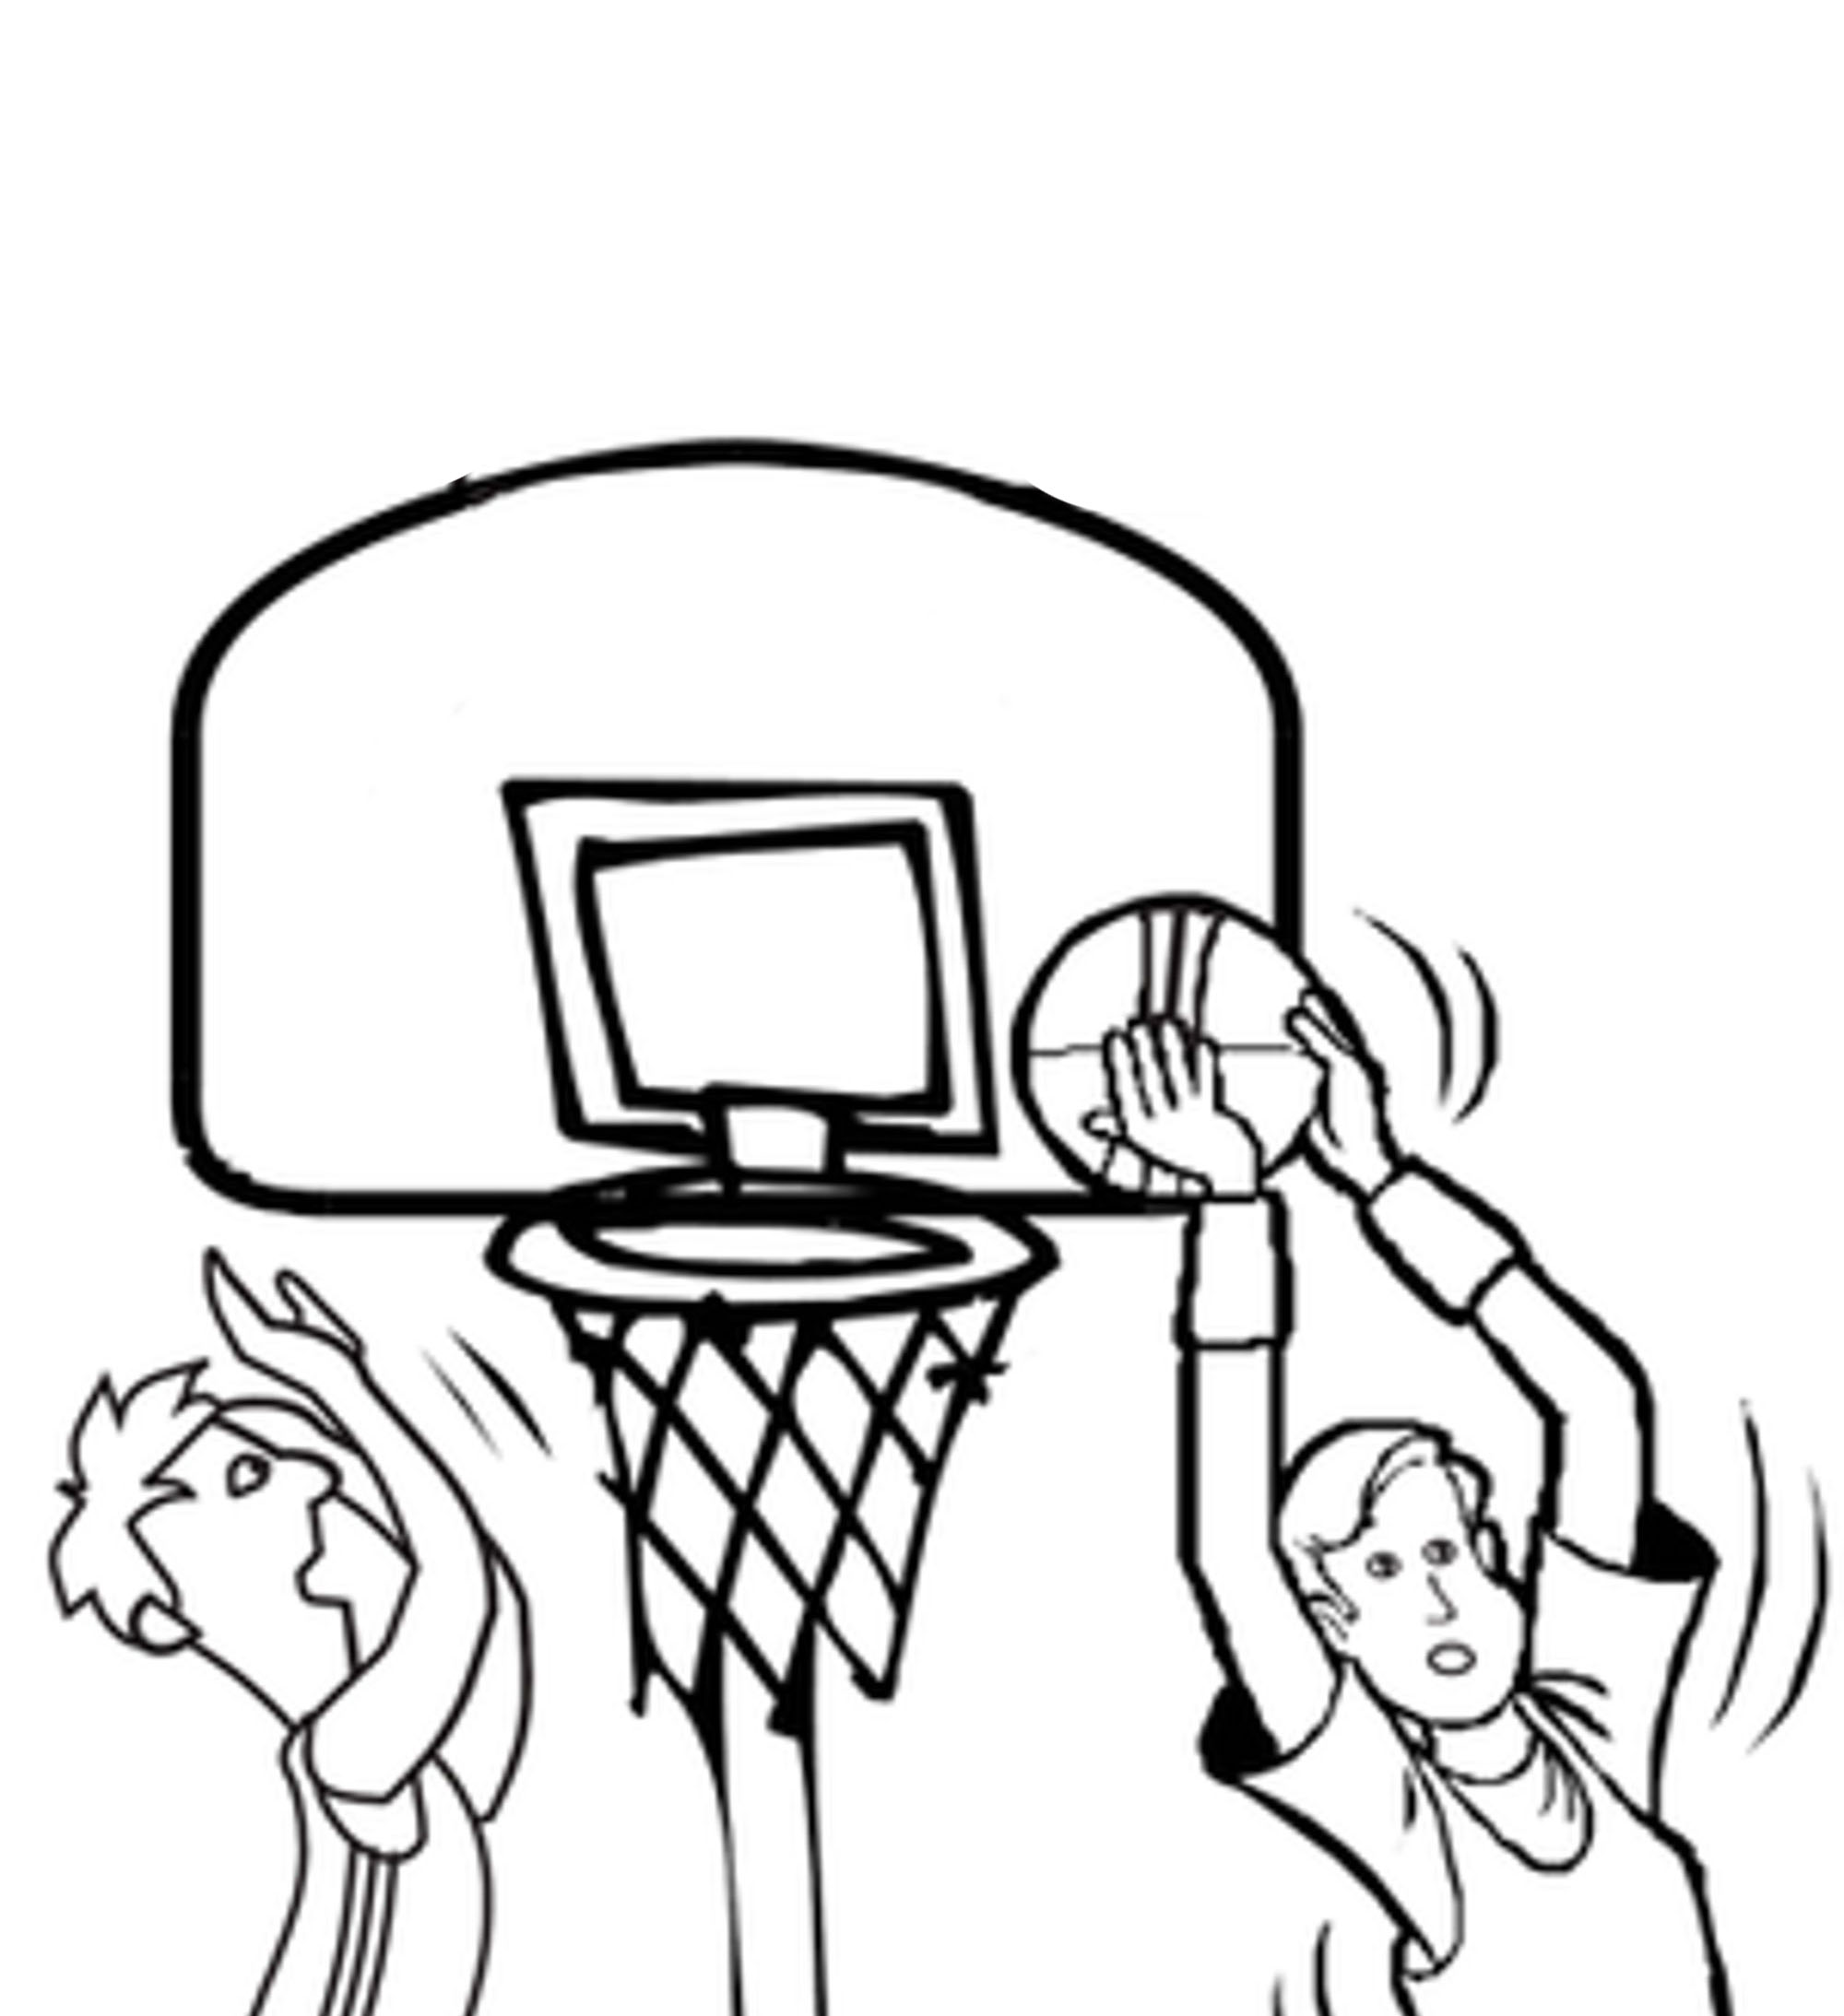 2000x2187 Basketball Hoop Coloring Page